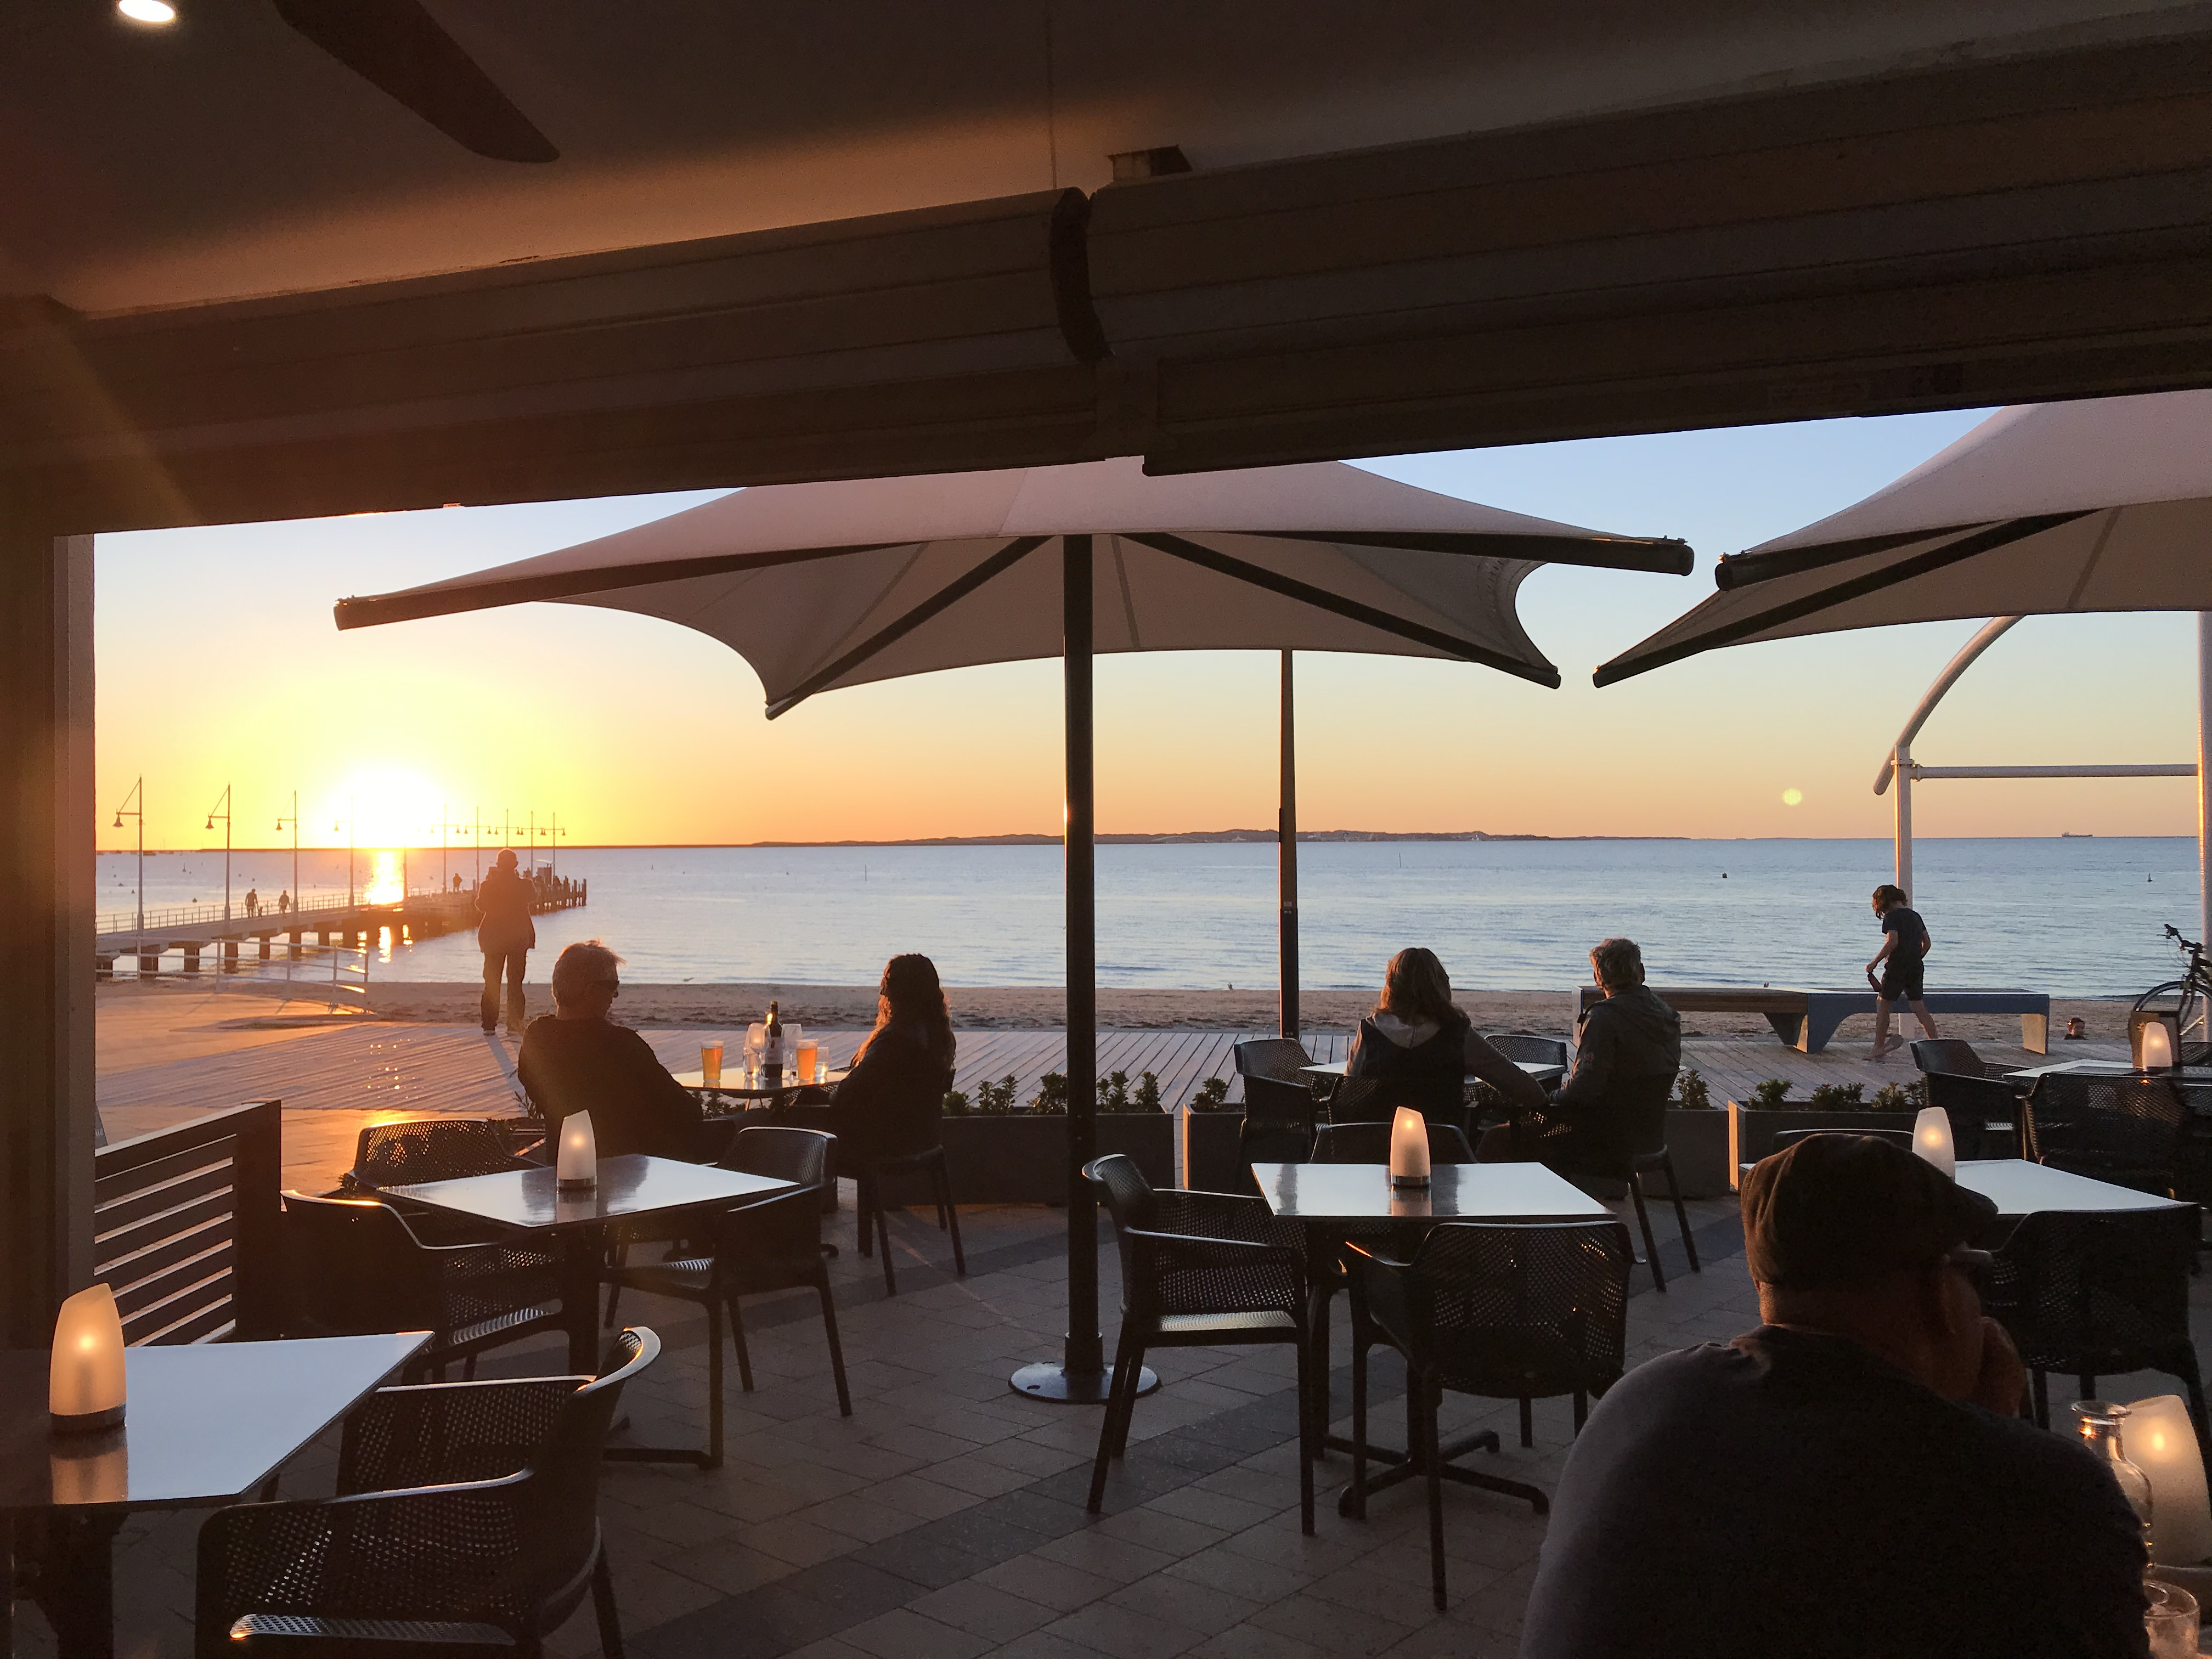 Slice of Perth – not the only popular thing in Rockingham